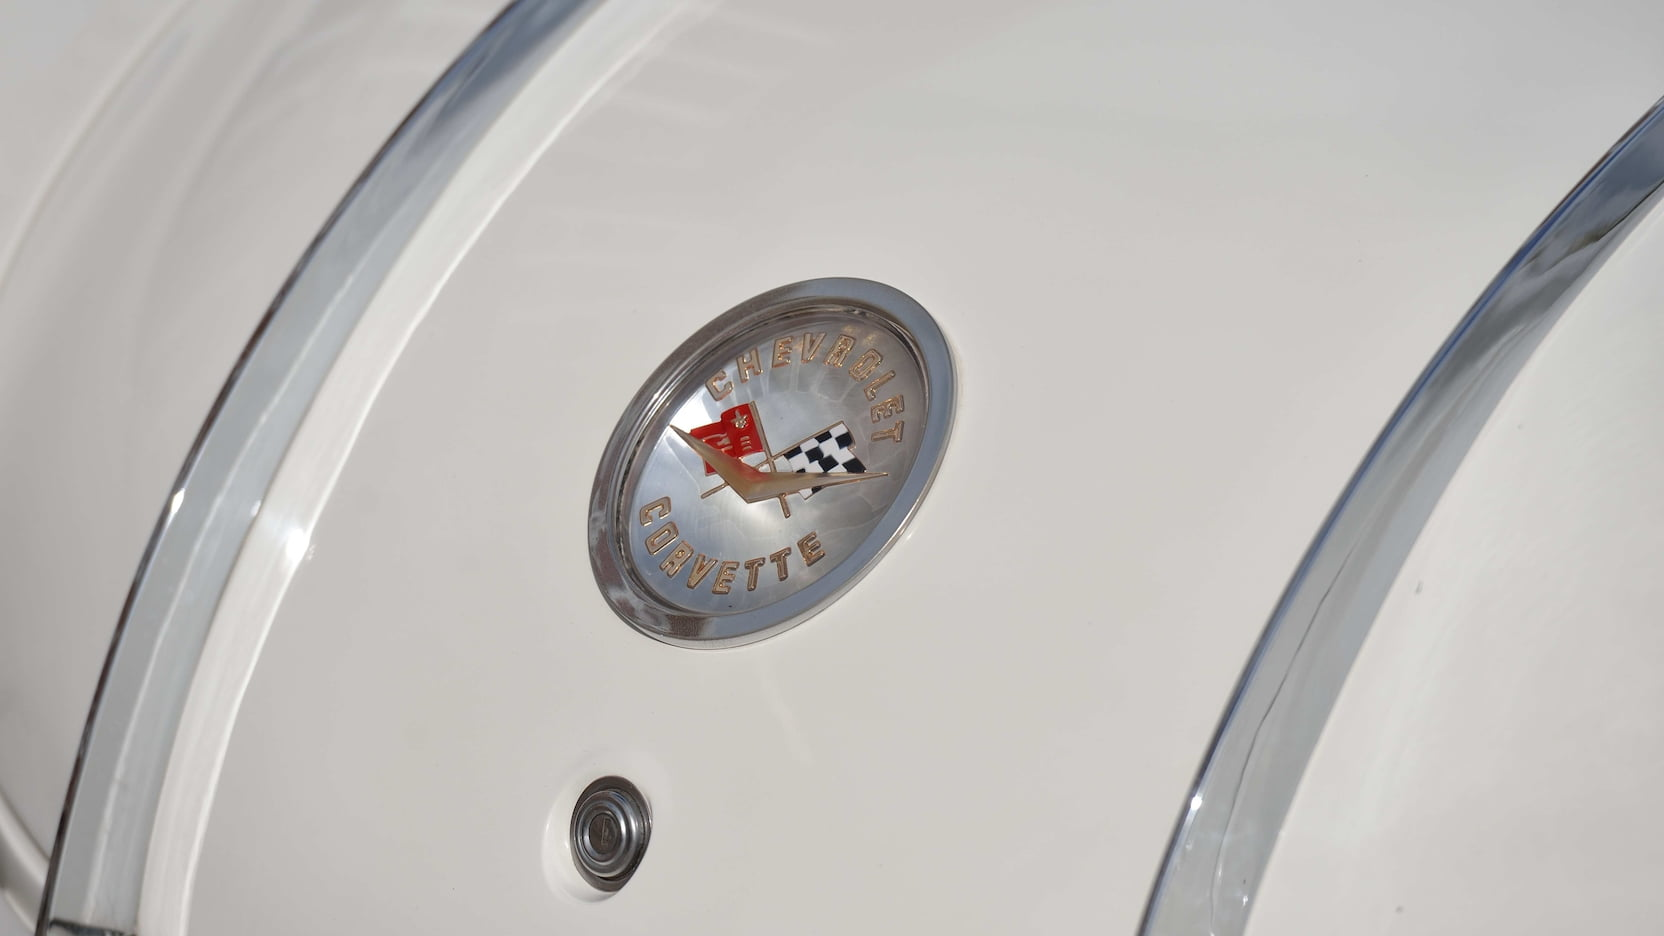 1958 Chitwood Thrill Show Corvette Convertible Trunk Emblem Detail